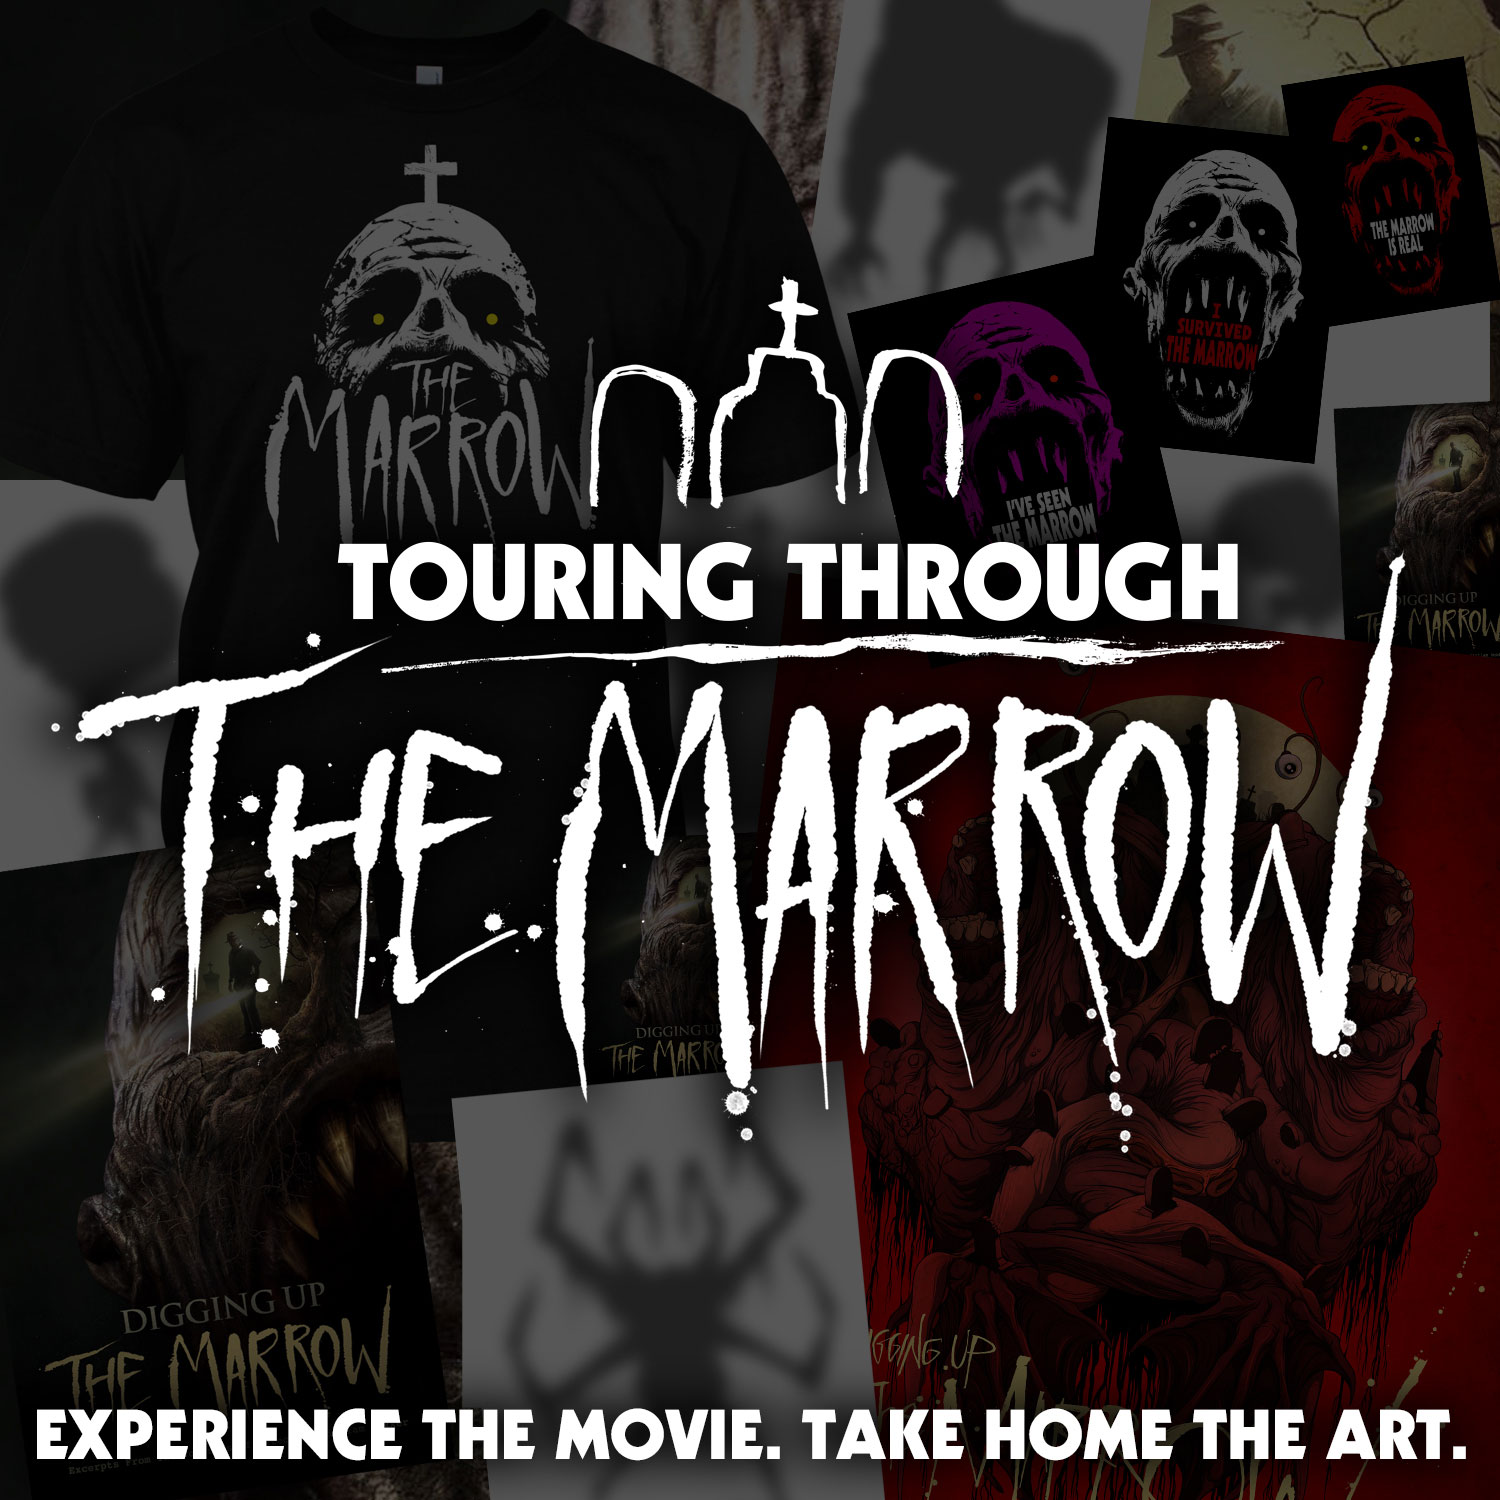 digging up the marrow movie trailer